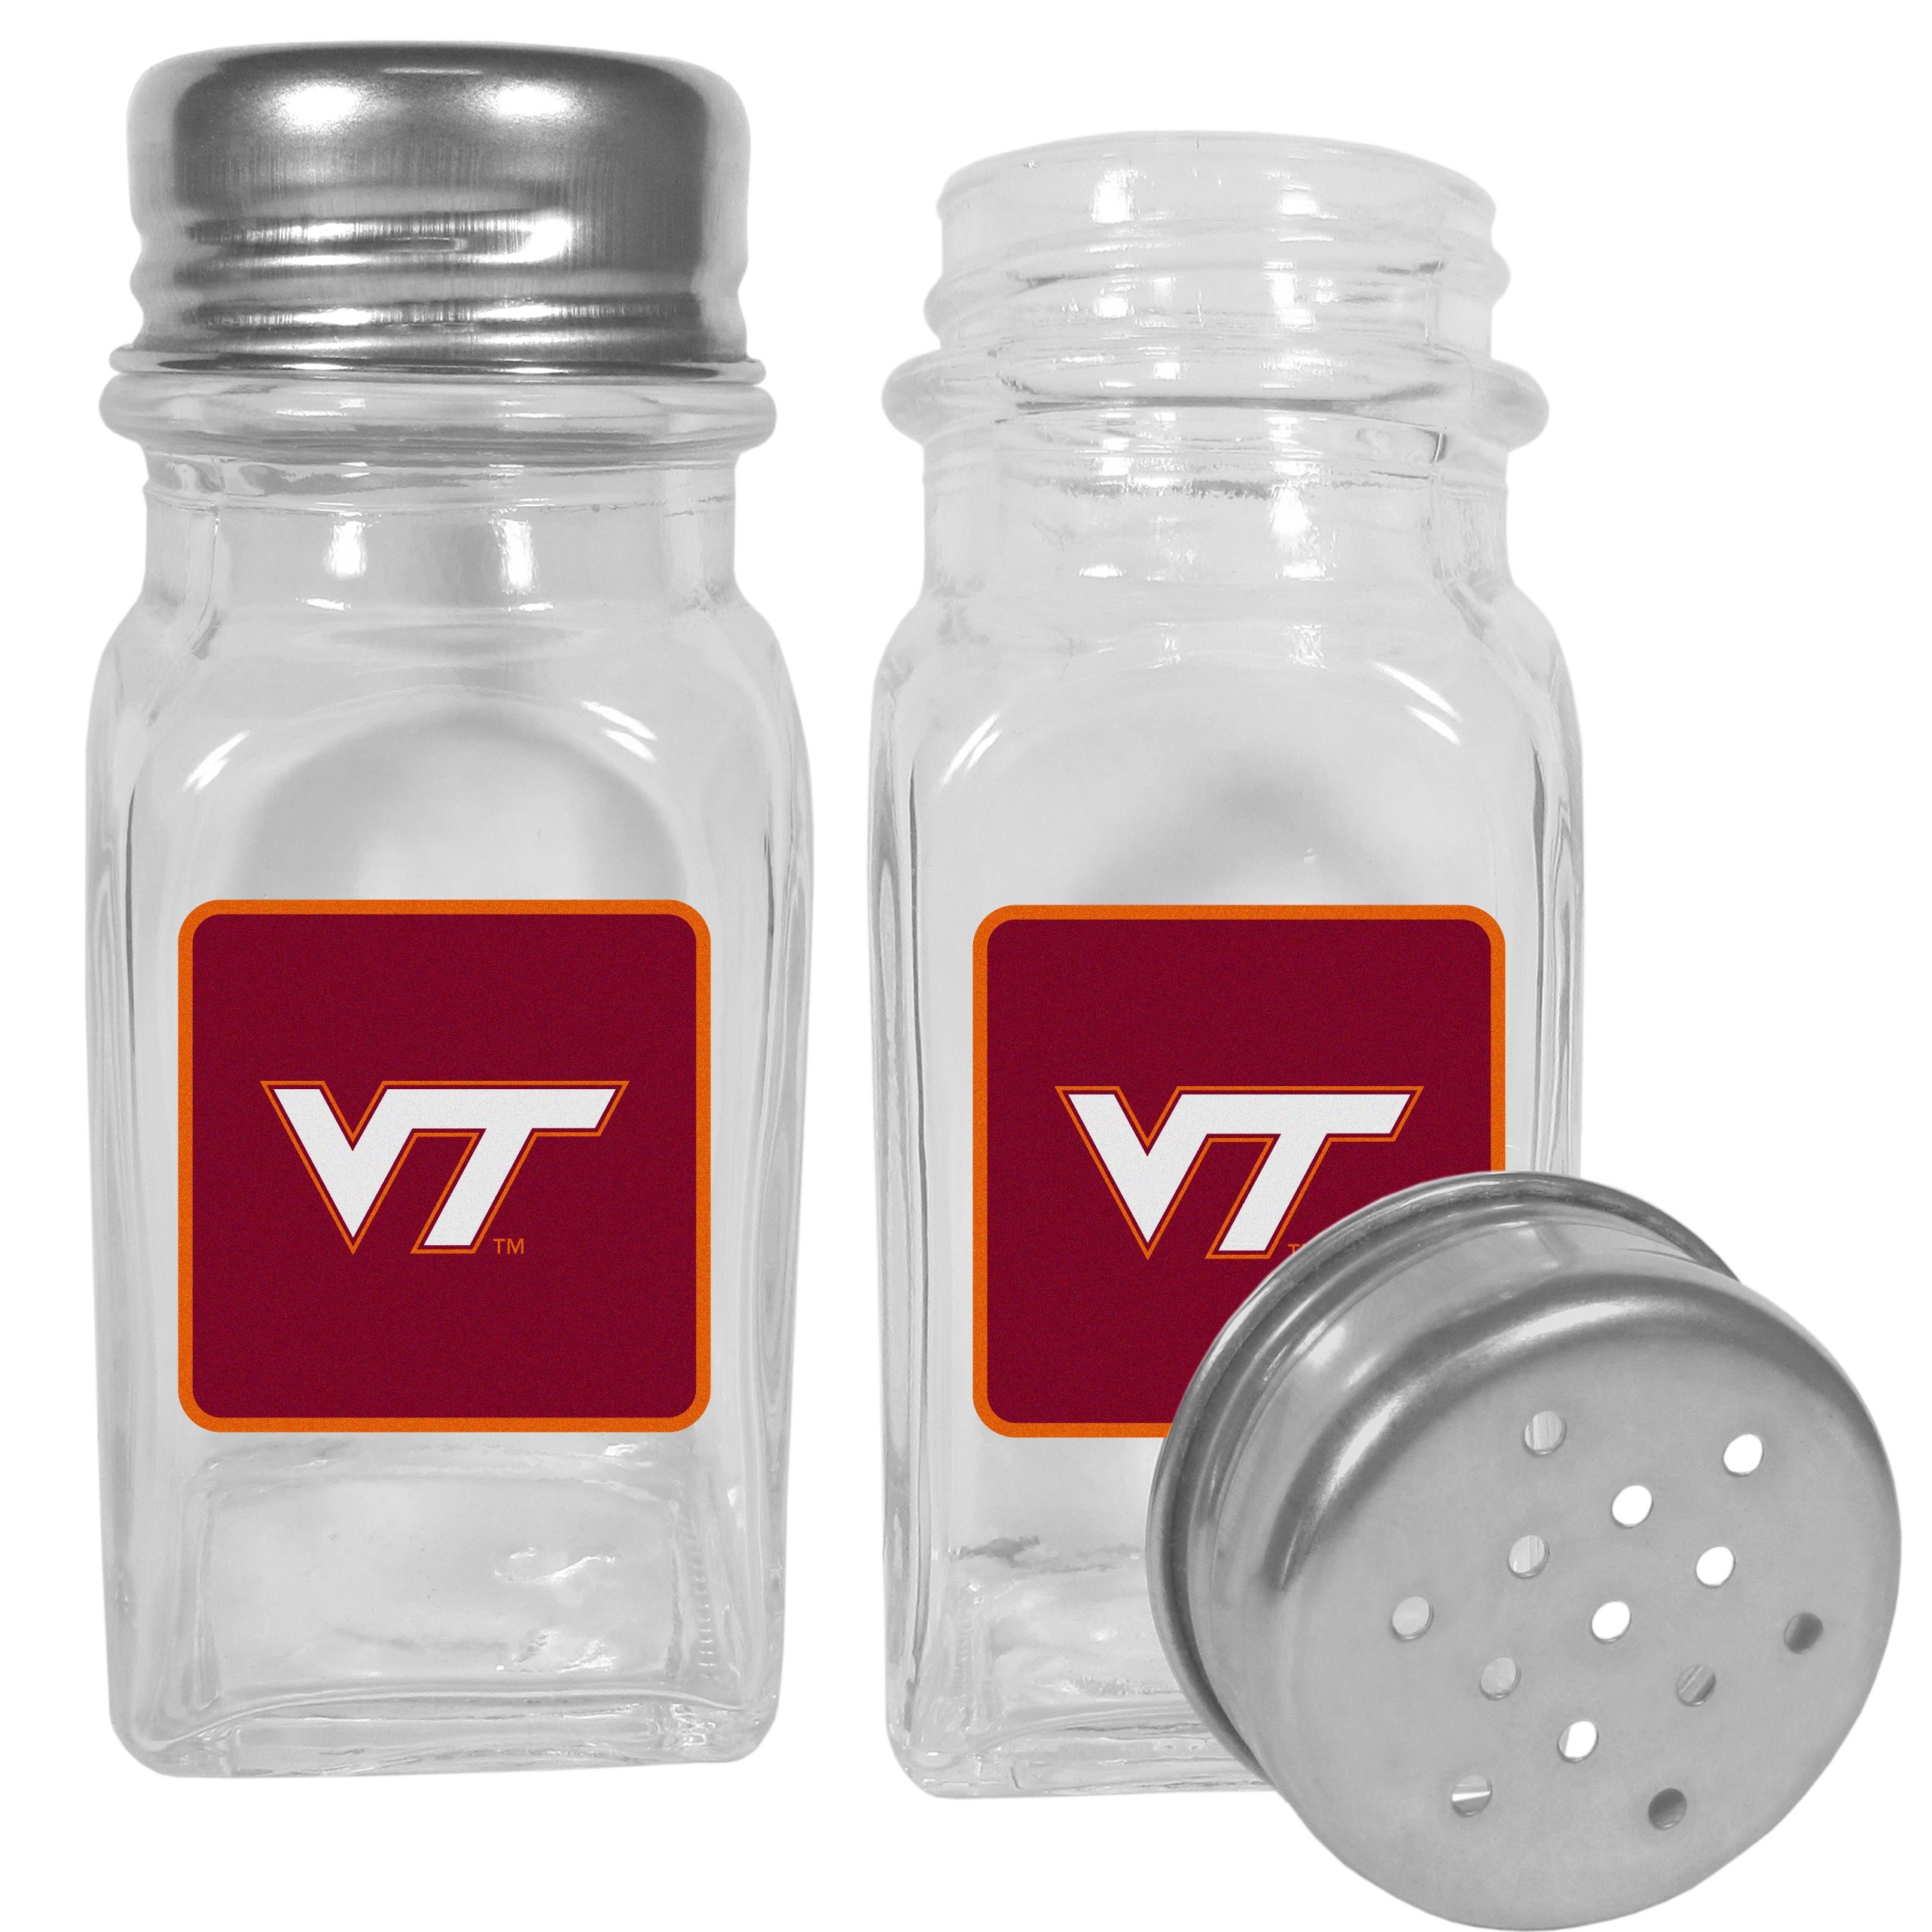 Virginia Tech Hokies Graphics Salt & Pepper Shaker - No tailgate party is complete without your Virginia Tech Hokies salt & pepper shakers featuring bright team logos. The diner replica salt and pepper shakers are glass with screw top lids. These team shakers are a great grill accessory whether you are barbecuing on the patio, picnicing or having a game day party.